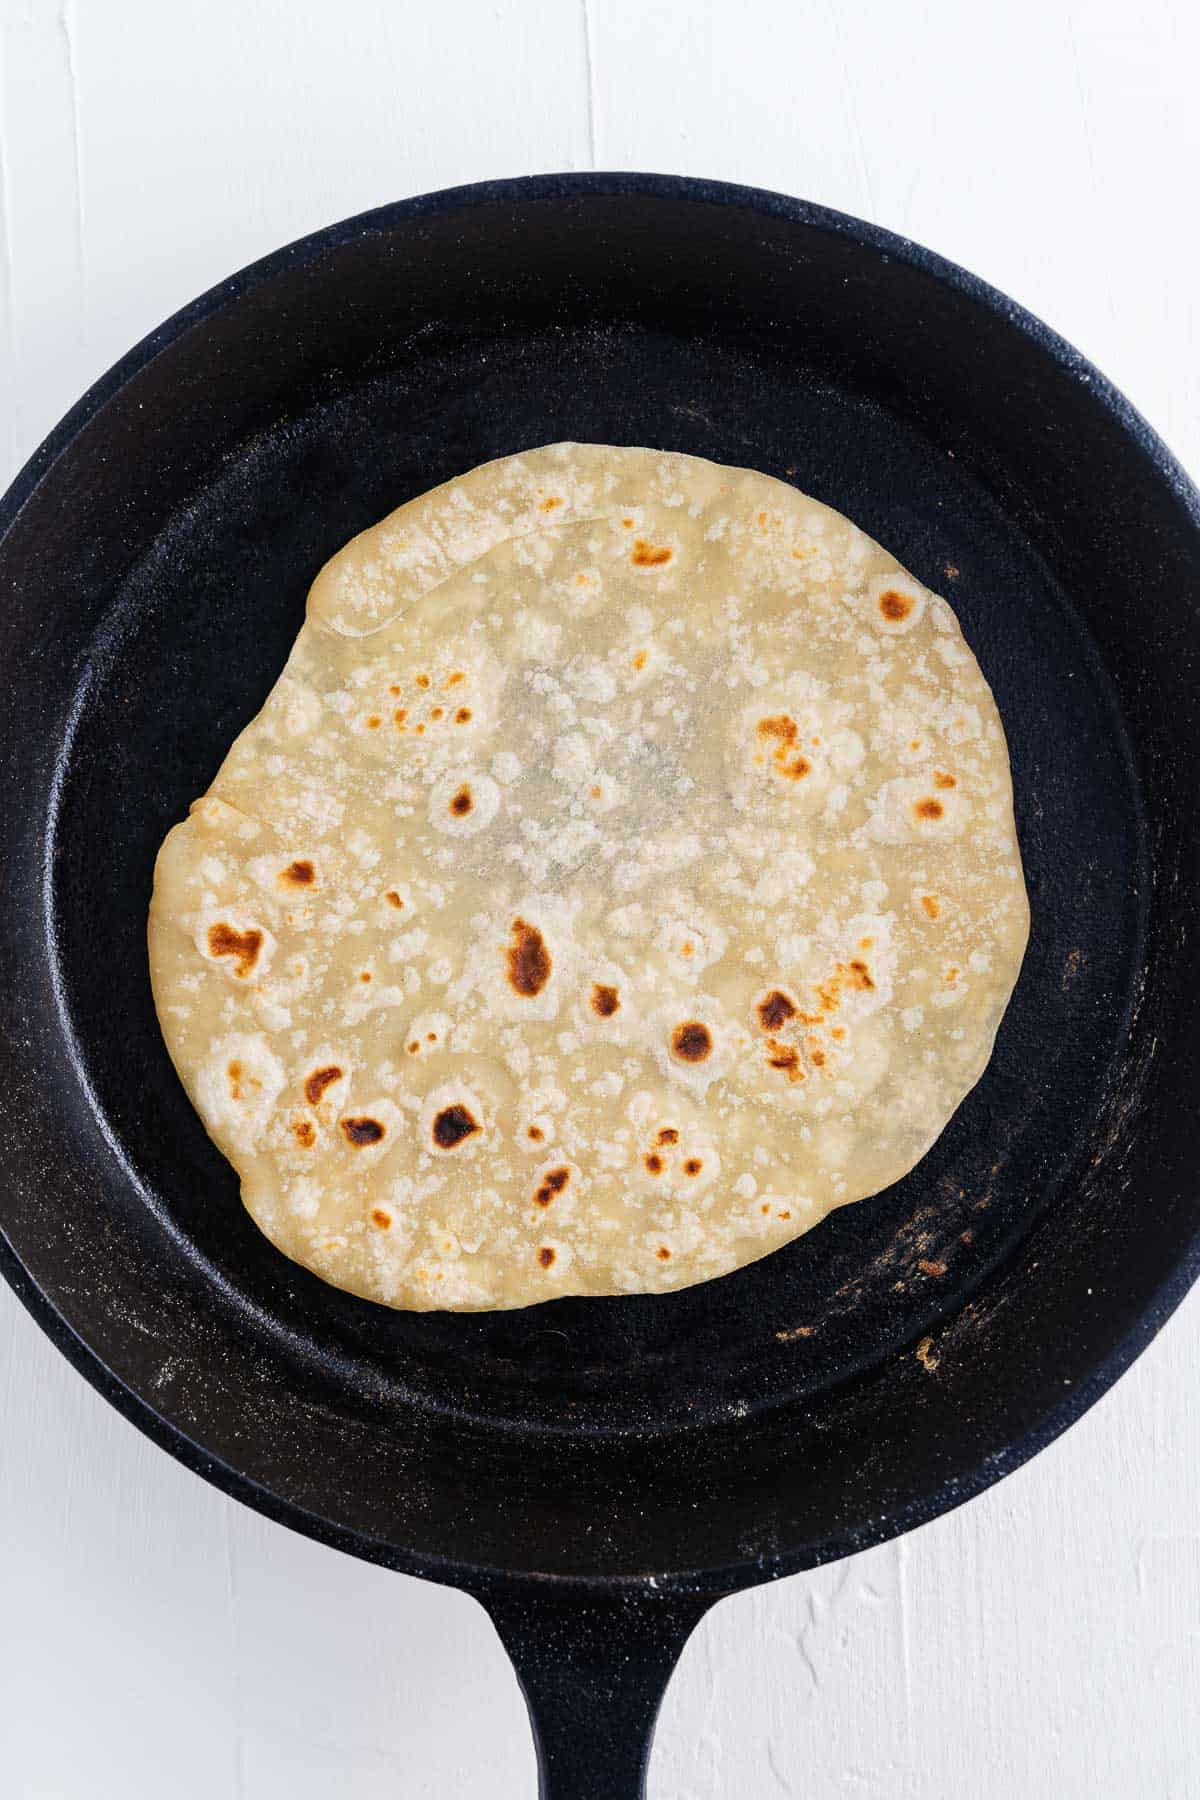 Flour Tortilla in a Skillet